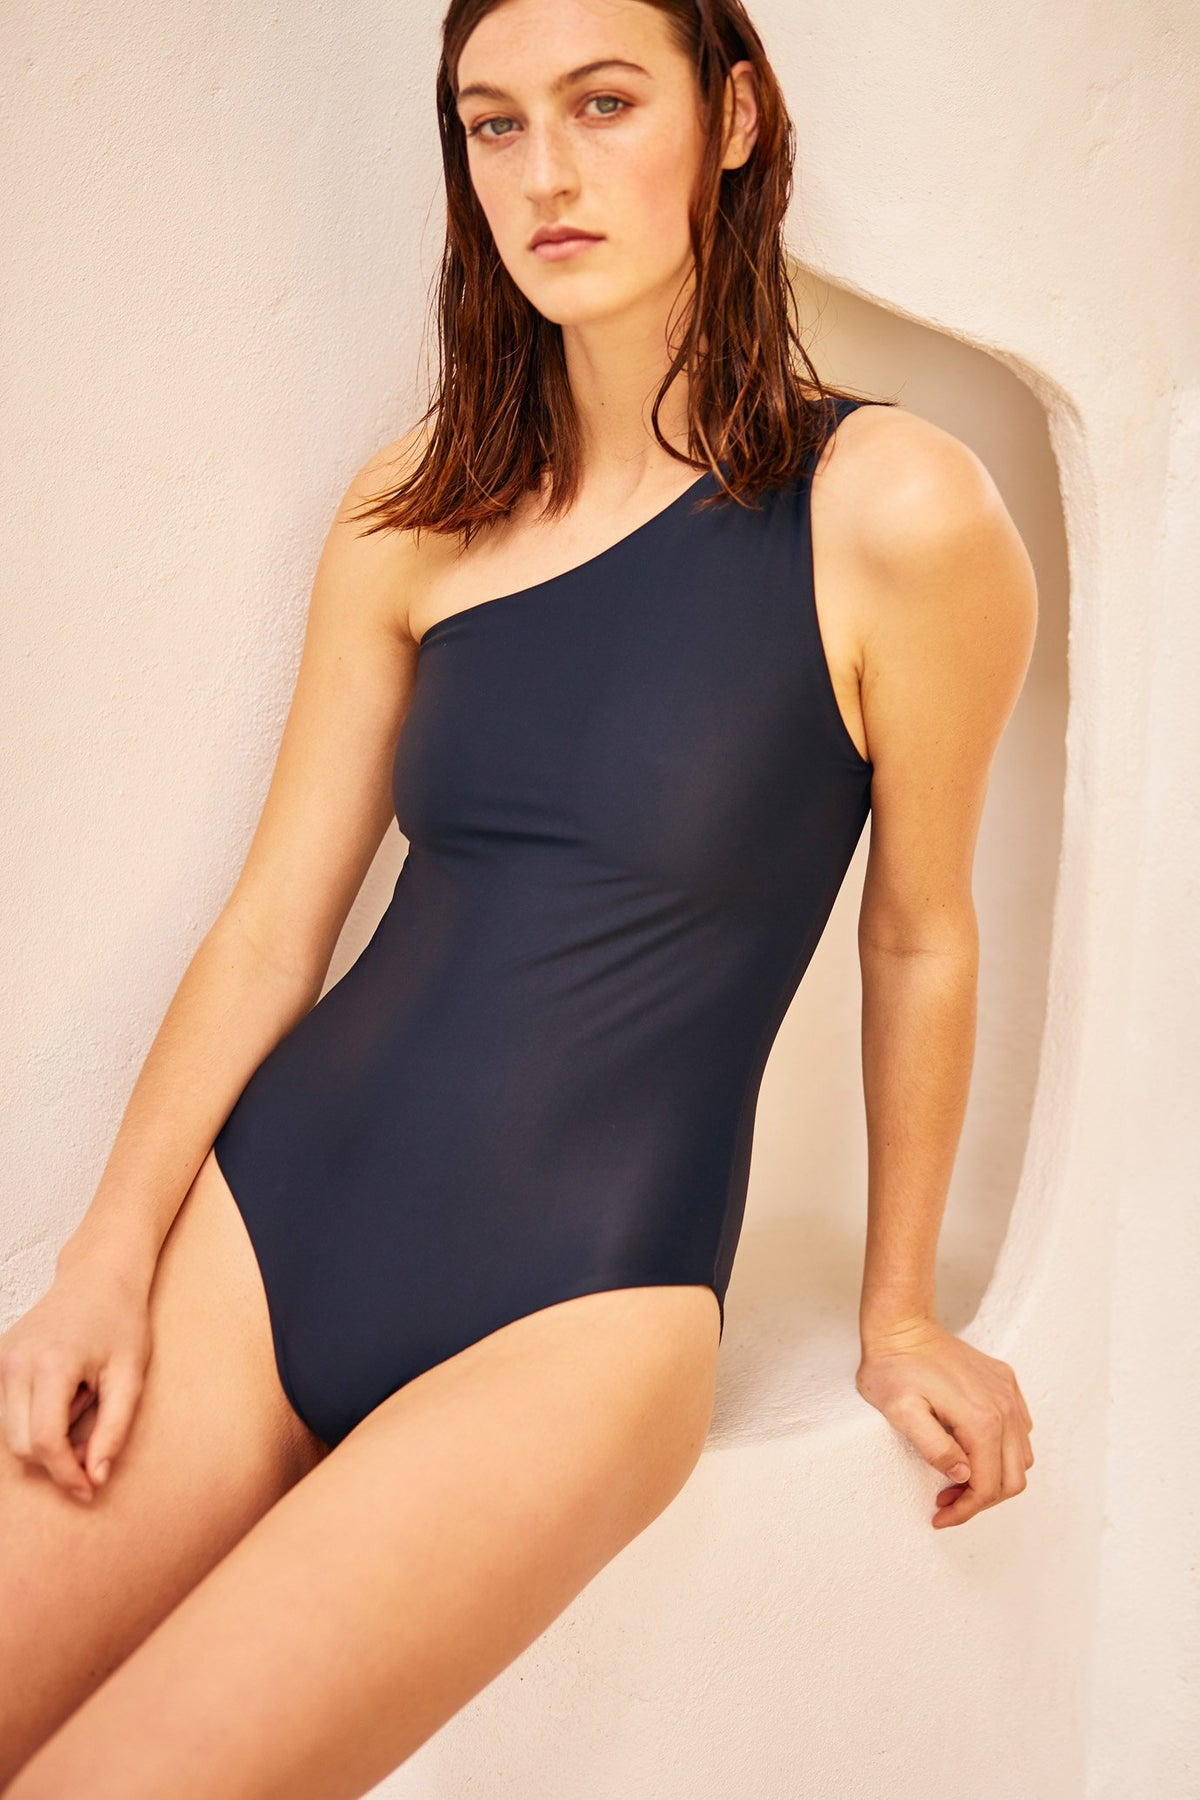 Kowtow stockists Swimwear Asymmetric one piece Organic Fairtrade Ethical Ponsonby Parnell